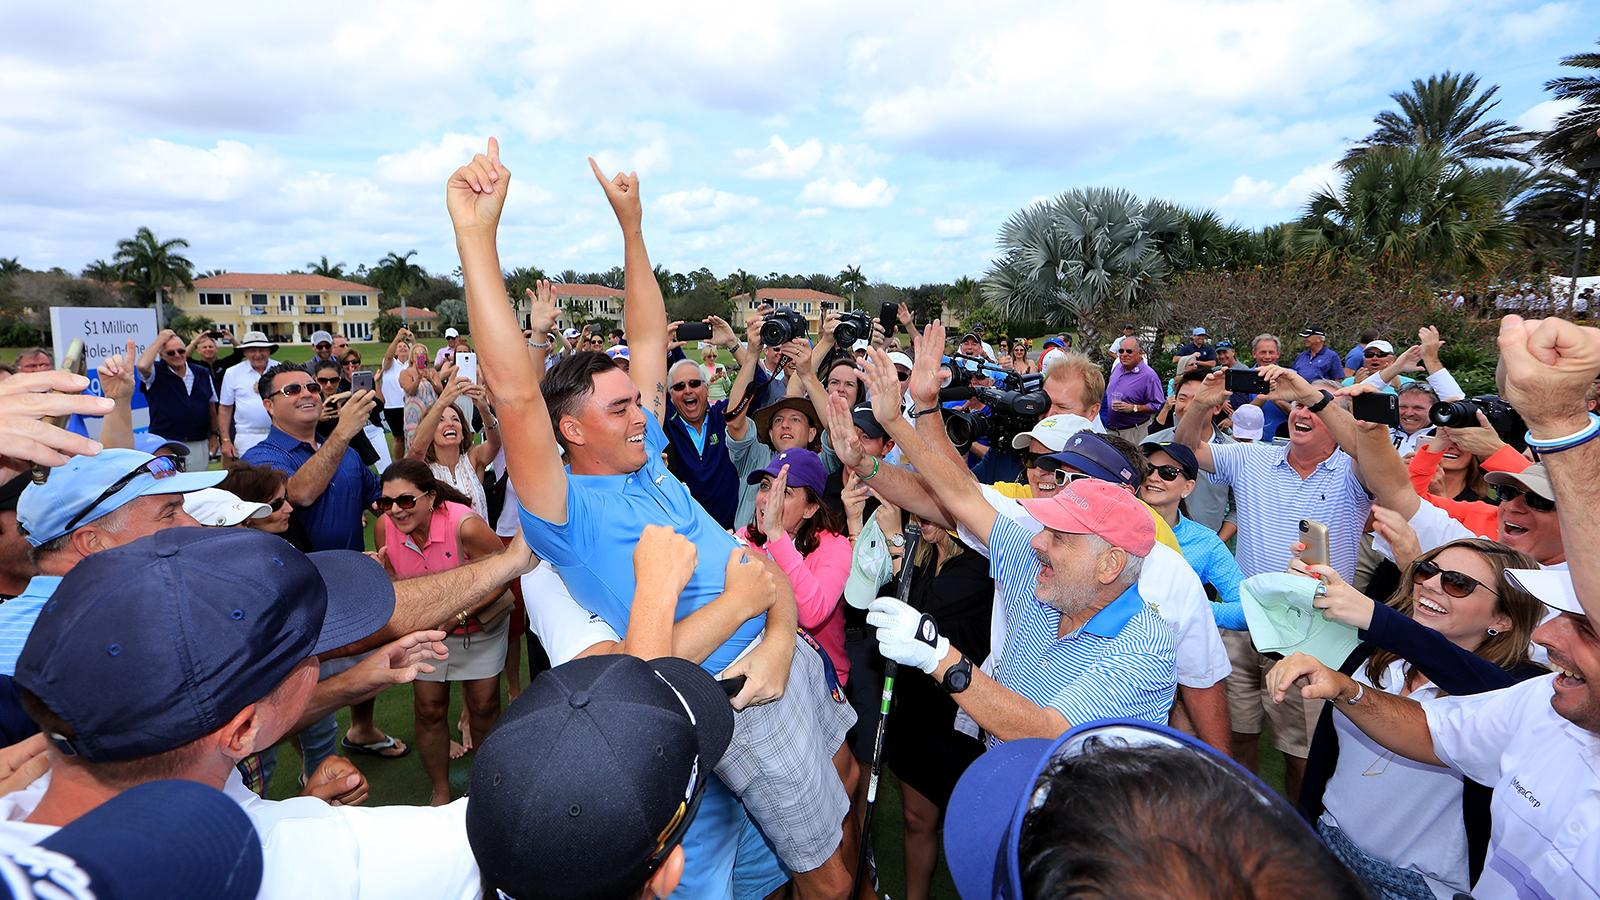 The crowd went crazy when Rickie Fowler hit a hole-in-one at the Els for Autism Pro-Am, raising $1 million with one swing.